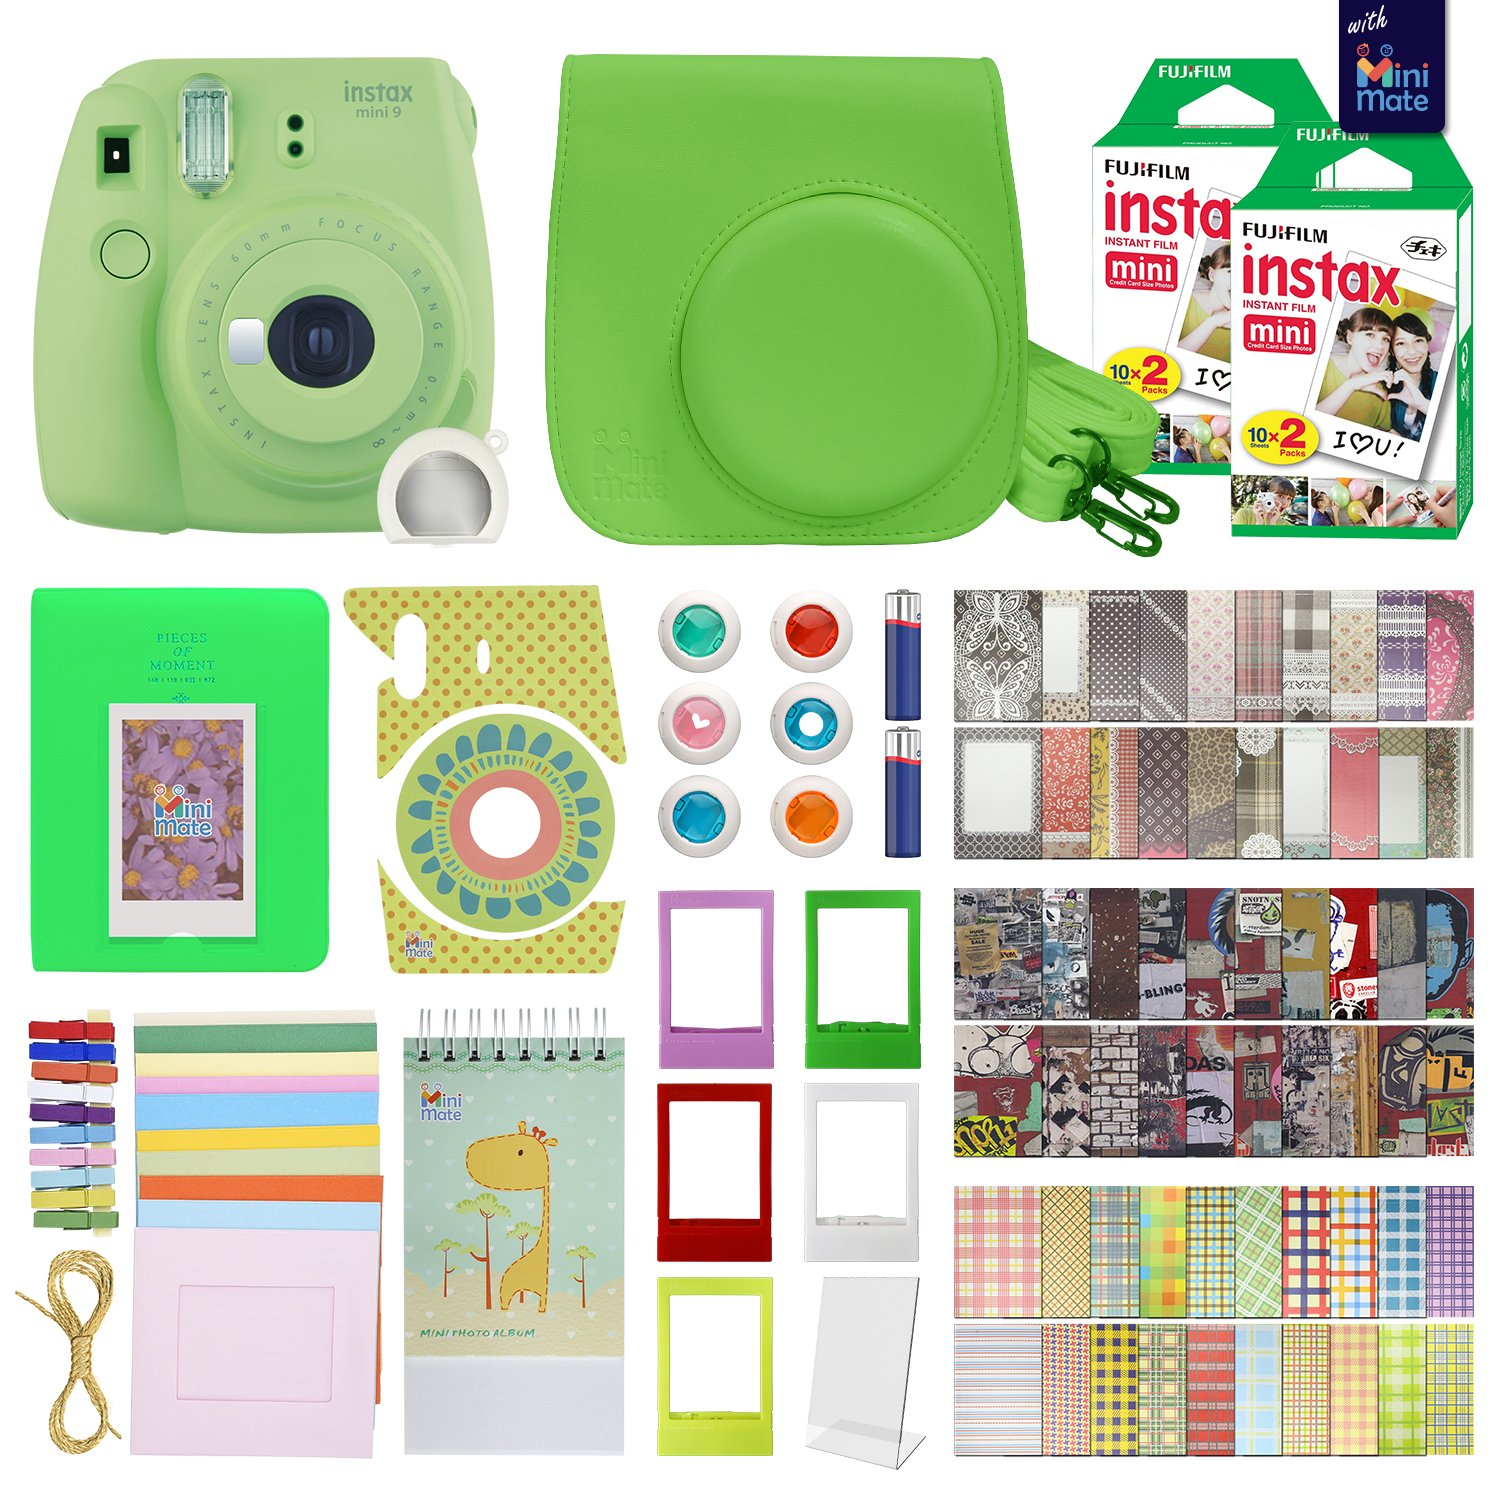 Fujifilm Instax Mini 9 Instant Camera With with 40 Sheets of Instant Film, Custom Mini 9 Case with Strap, Photo Album, Assorted Frames , 6 Color Filters And More Best Value Bundle by MiniMate